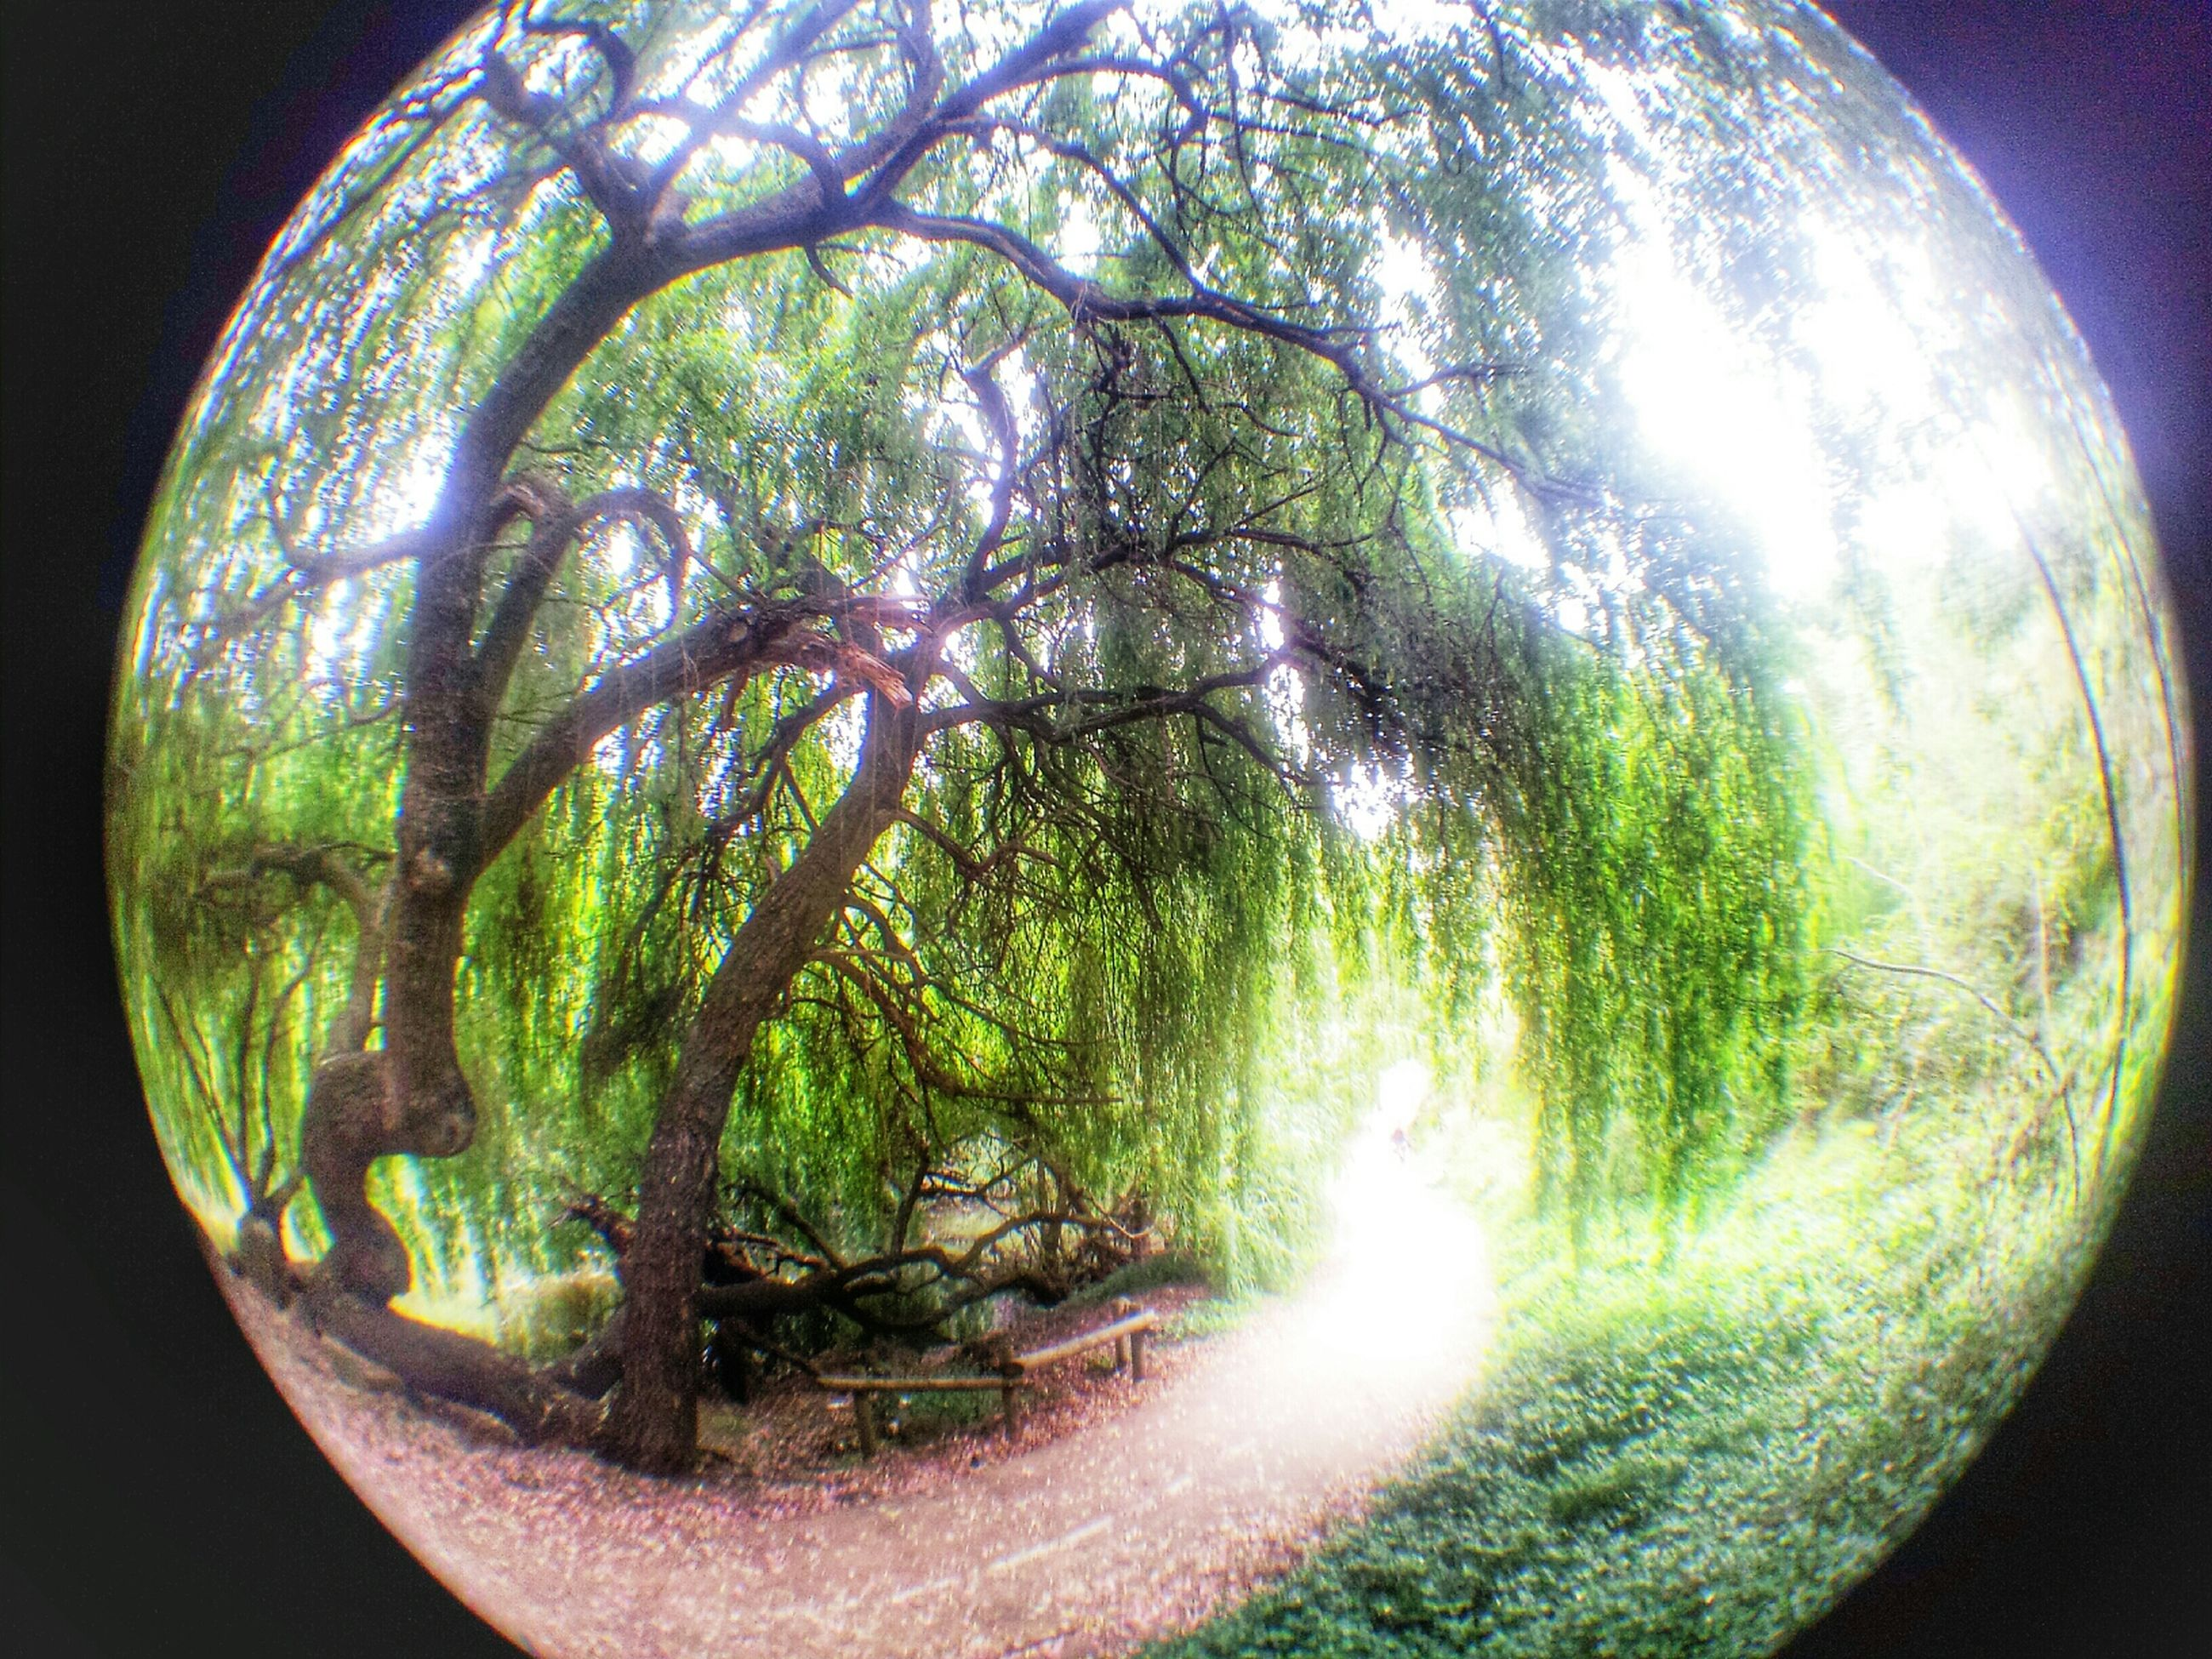 circle, tree, green color, nature, sky, growth, beauty in nature, reflection, geometric shape, tranquility, round, fish-eye lens, water, sphere, tranquil scene, transparent, scenics, close-up, no people, outdoors